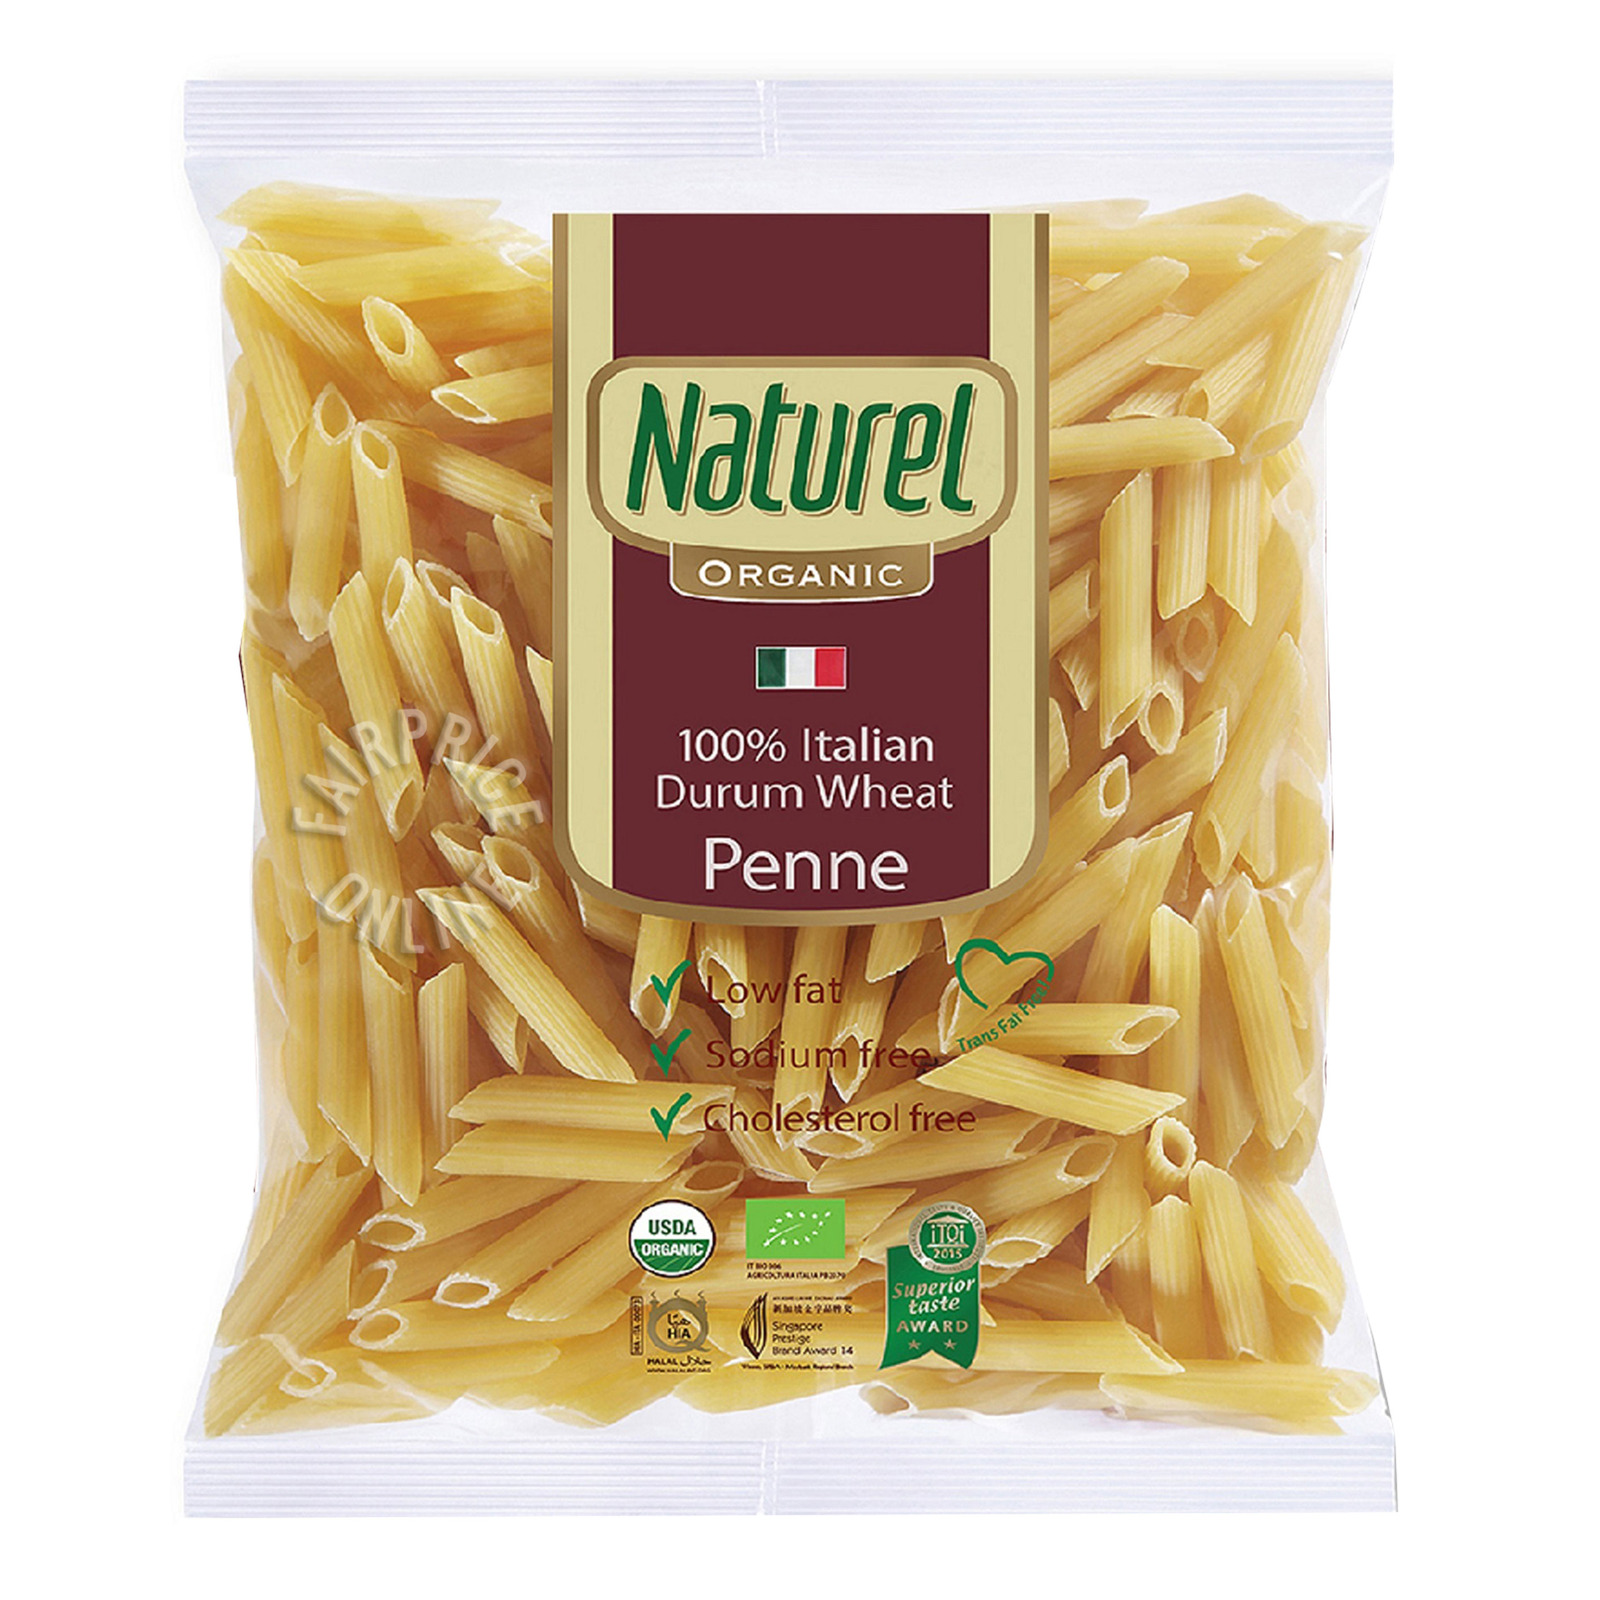 NATUREL Organic Durum Wheat Penne 500g